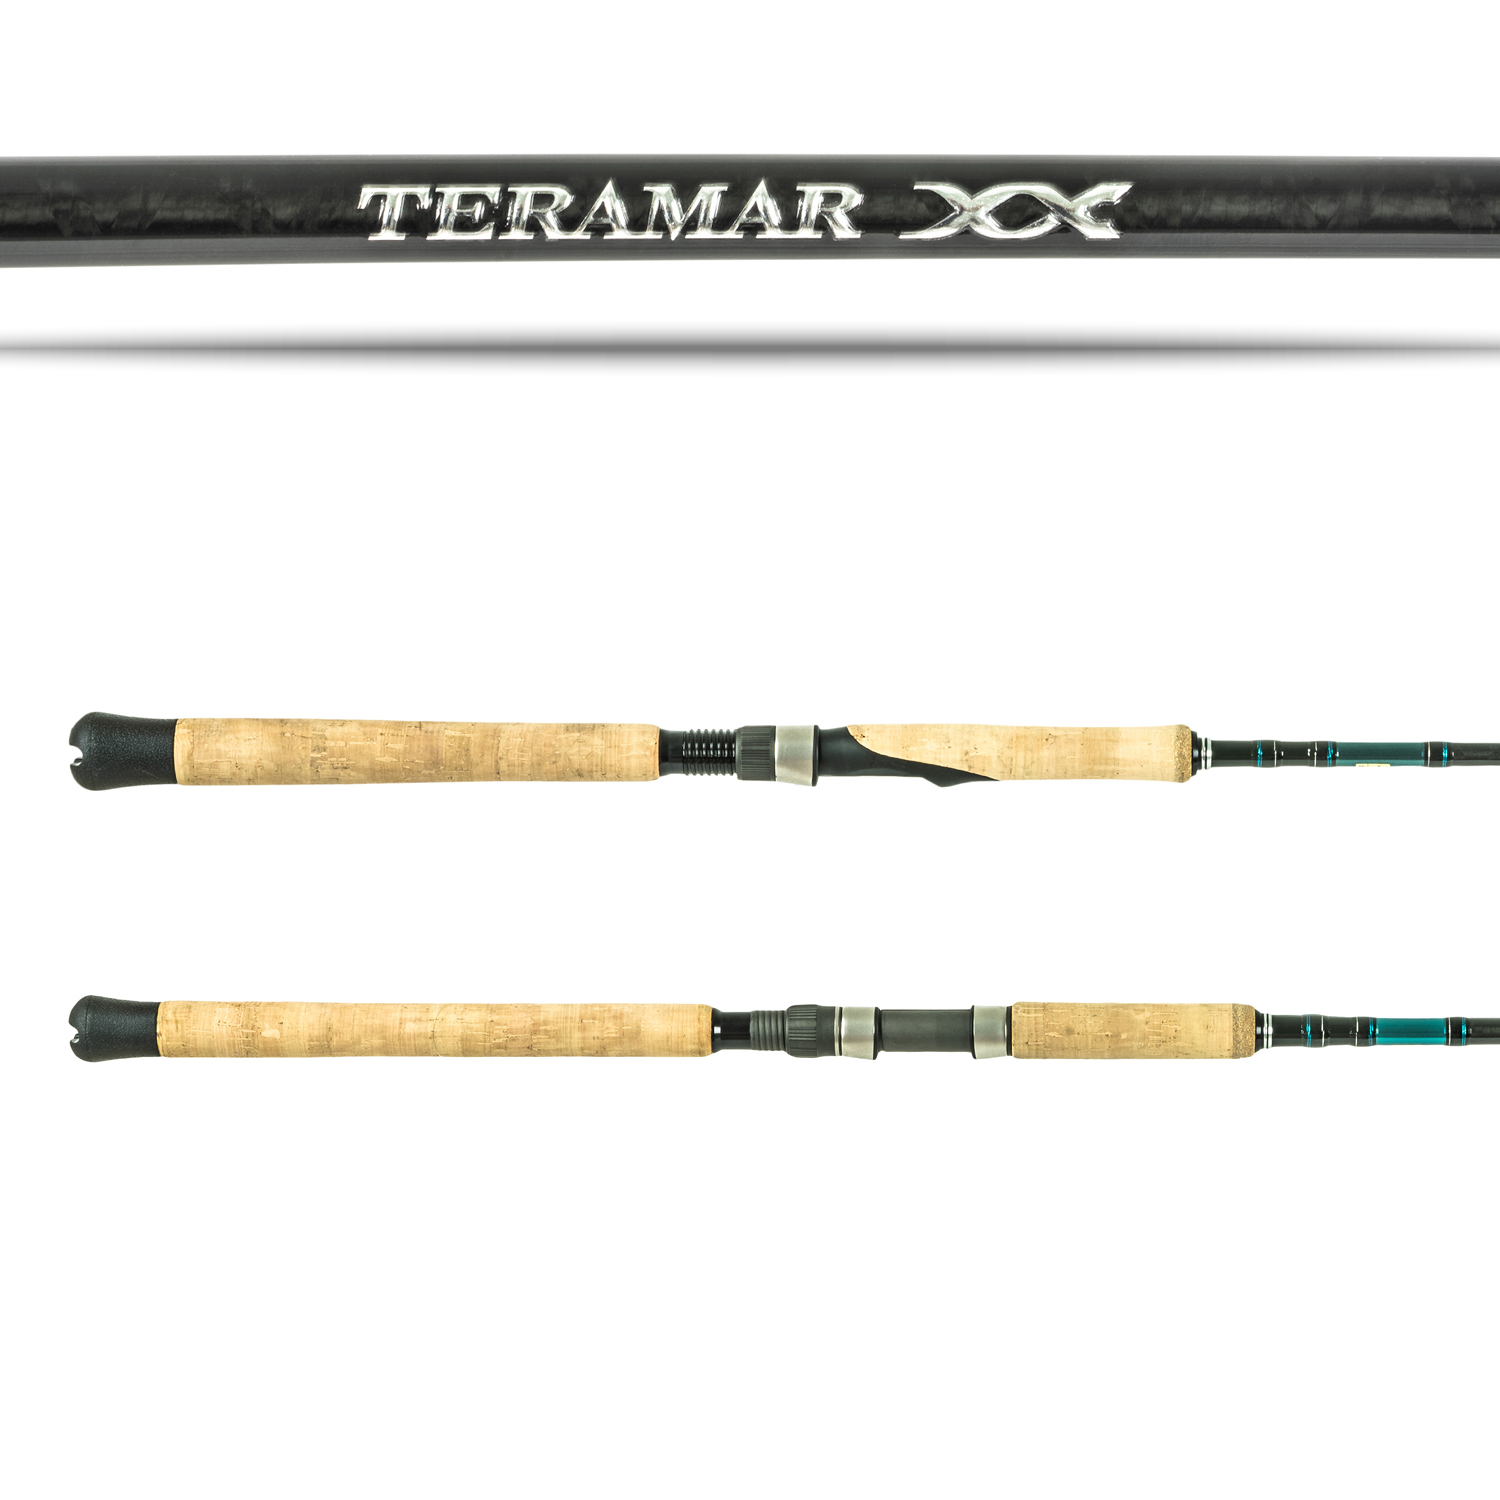 TERAMAR-XX-SE-SPINNING-A-primary_01_Family